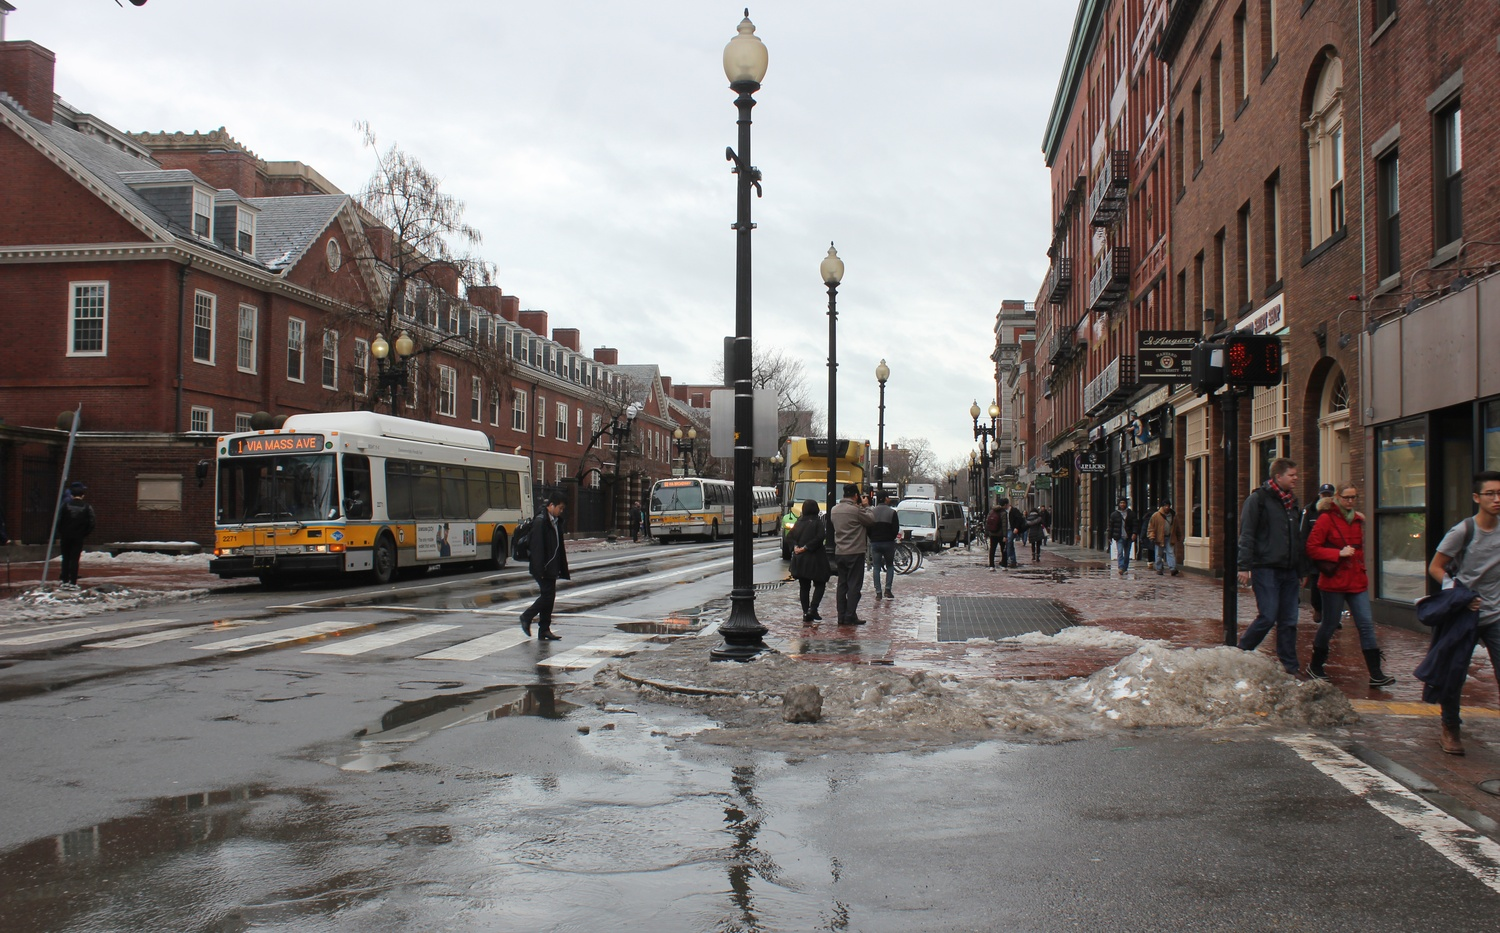 Despite a weekend of subzero temperatures in the area, melting snow filled the streets of Cambridge as a unusually warm high of 55 degrees Fahrenheit hit the area on Tuesday.